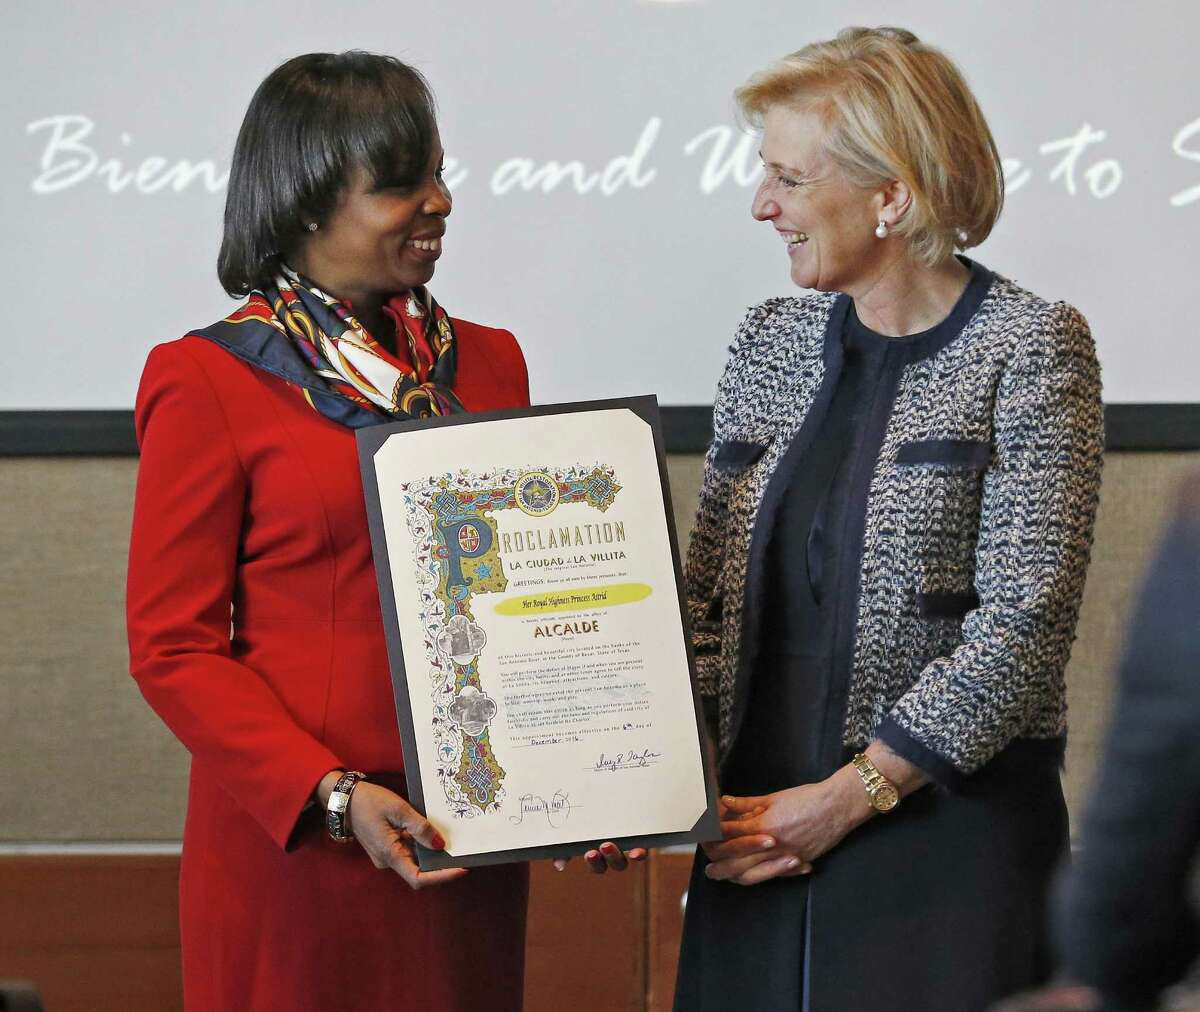 Princess Astrid of Belgium (right) is presented with a city proclamation by San Antonio Mayor Ivy Taylor before a business meeting at the International Center building where the city and Belgian business delegates gathered on Tuesday, Dec. 6, 2016. The Belgian delegation is traveling the state of Texas to meet with officials regarding trade and investment. Mayor Taylor along with other city and county officials will put their best foot forward to give the Belgians a positive impression of San Antonio.